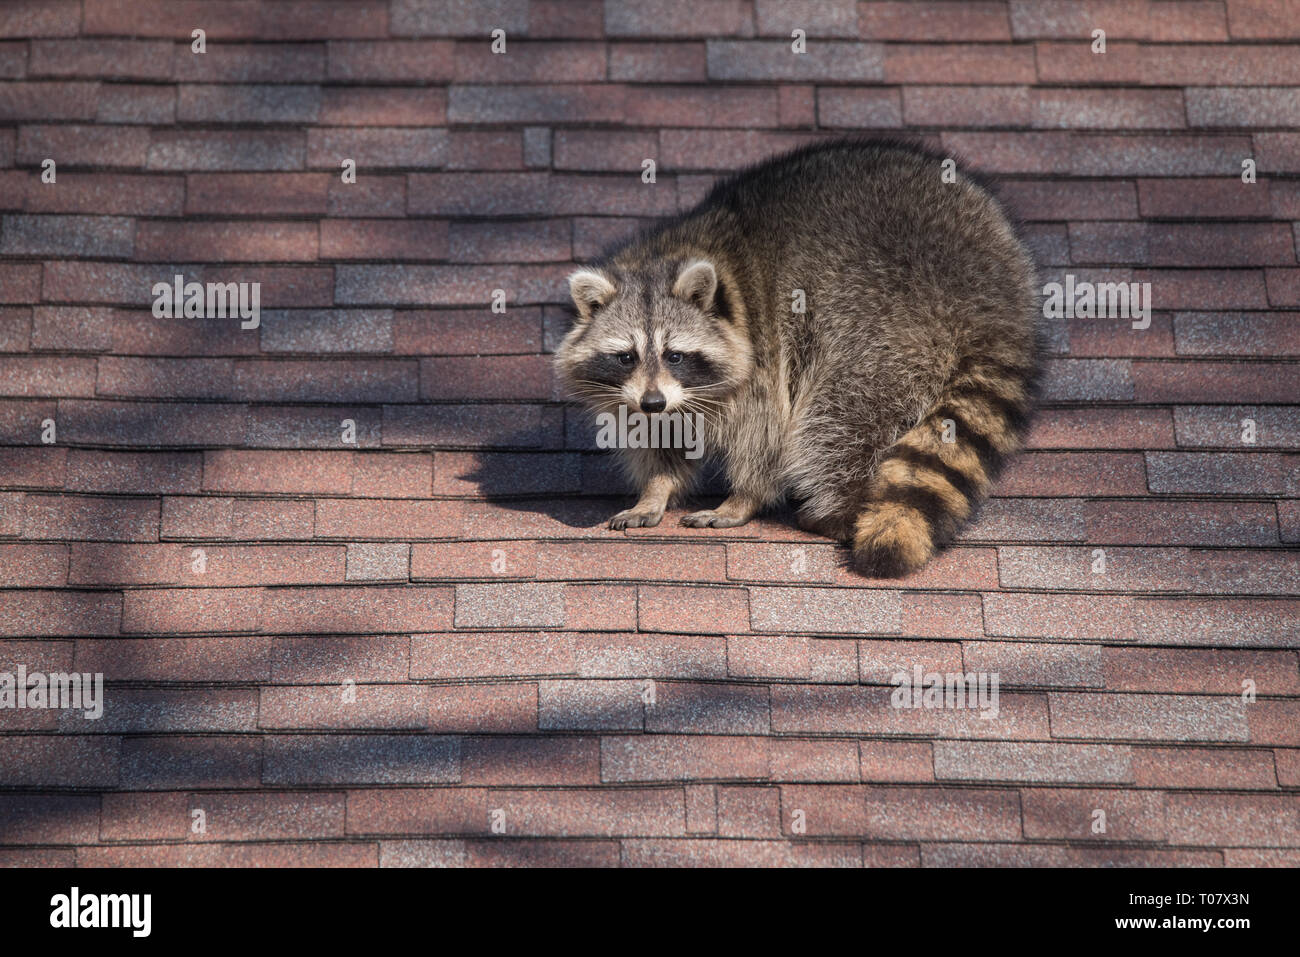 A raccoon walks around on someone's house in the Upper Beaches neighbourhood of Toronto, Canada, a city notorious for its urban raccoon population. Stock Photo